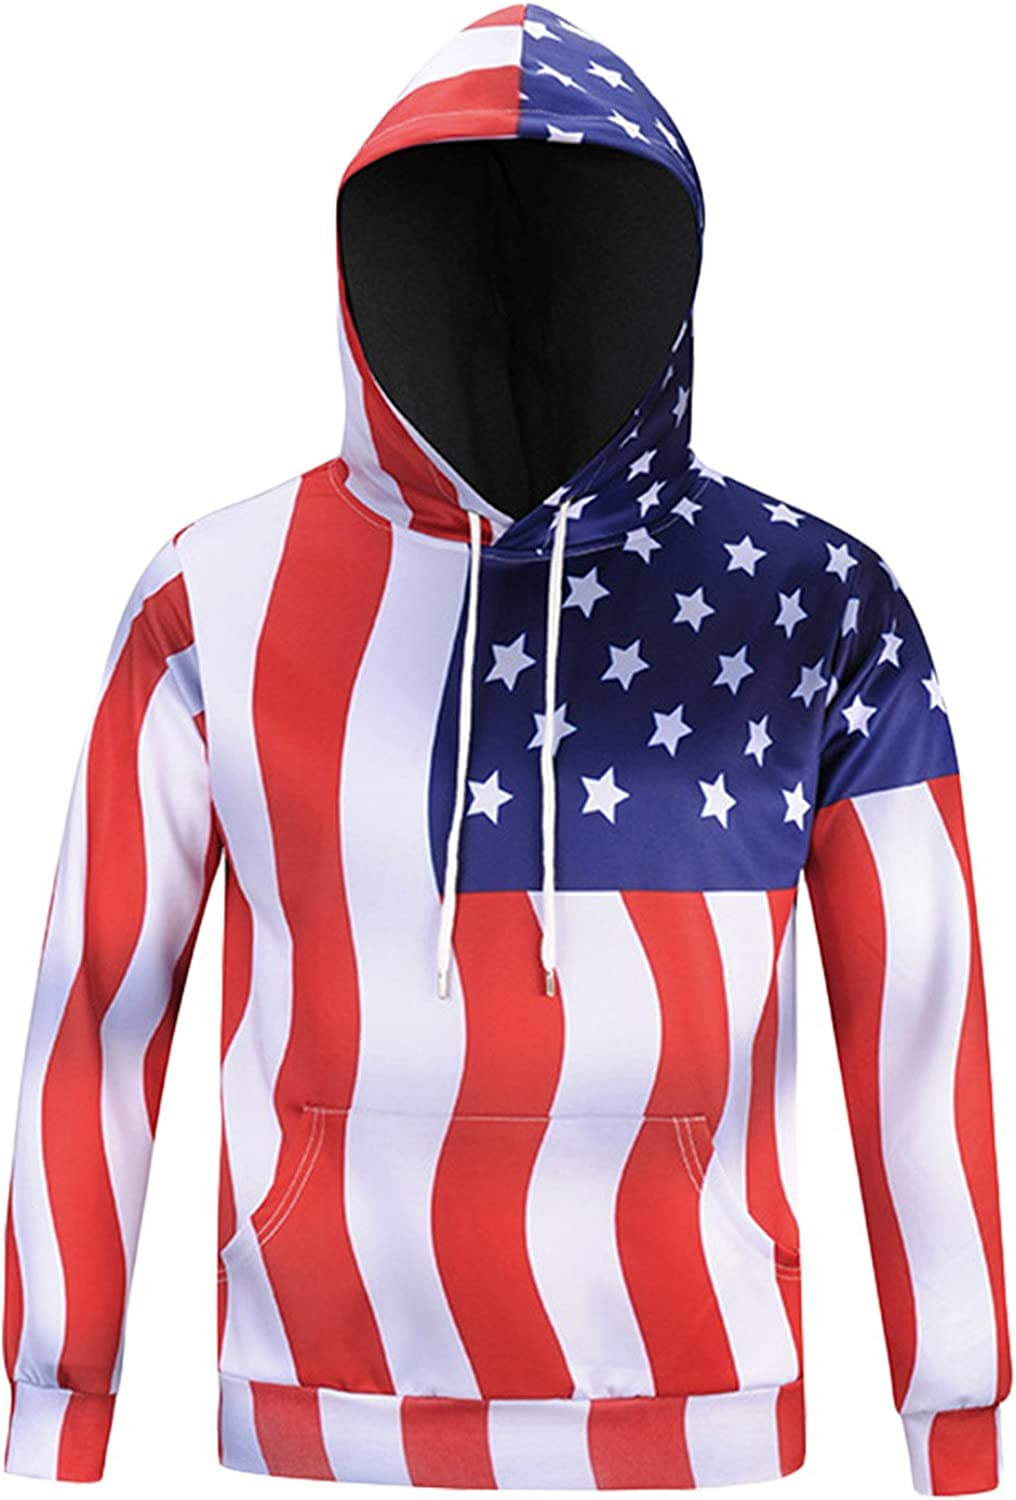 American Flags Adult Hooded Sweatshirt